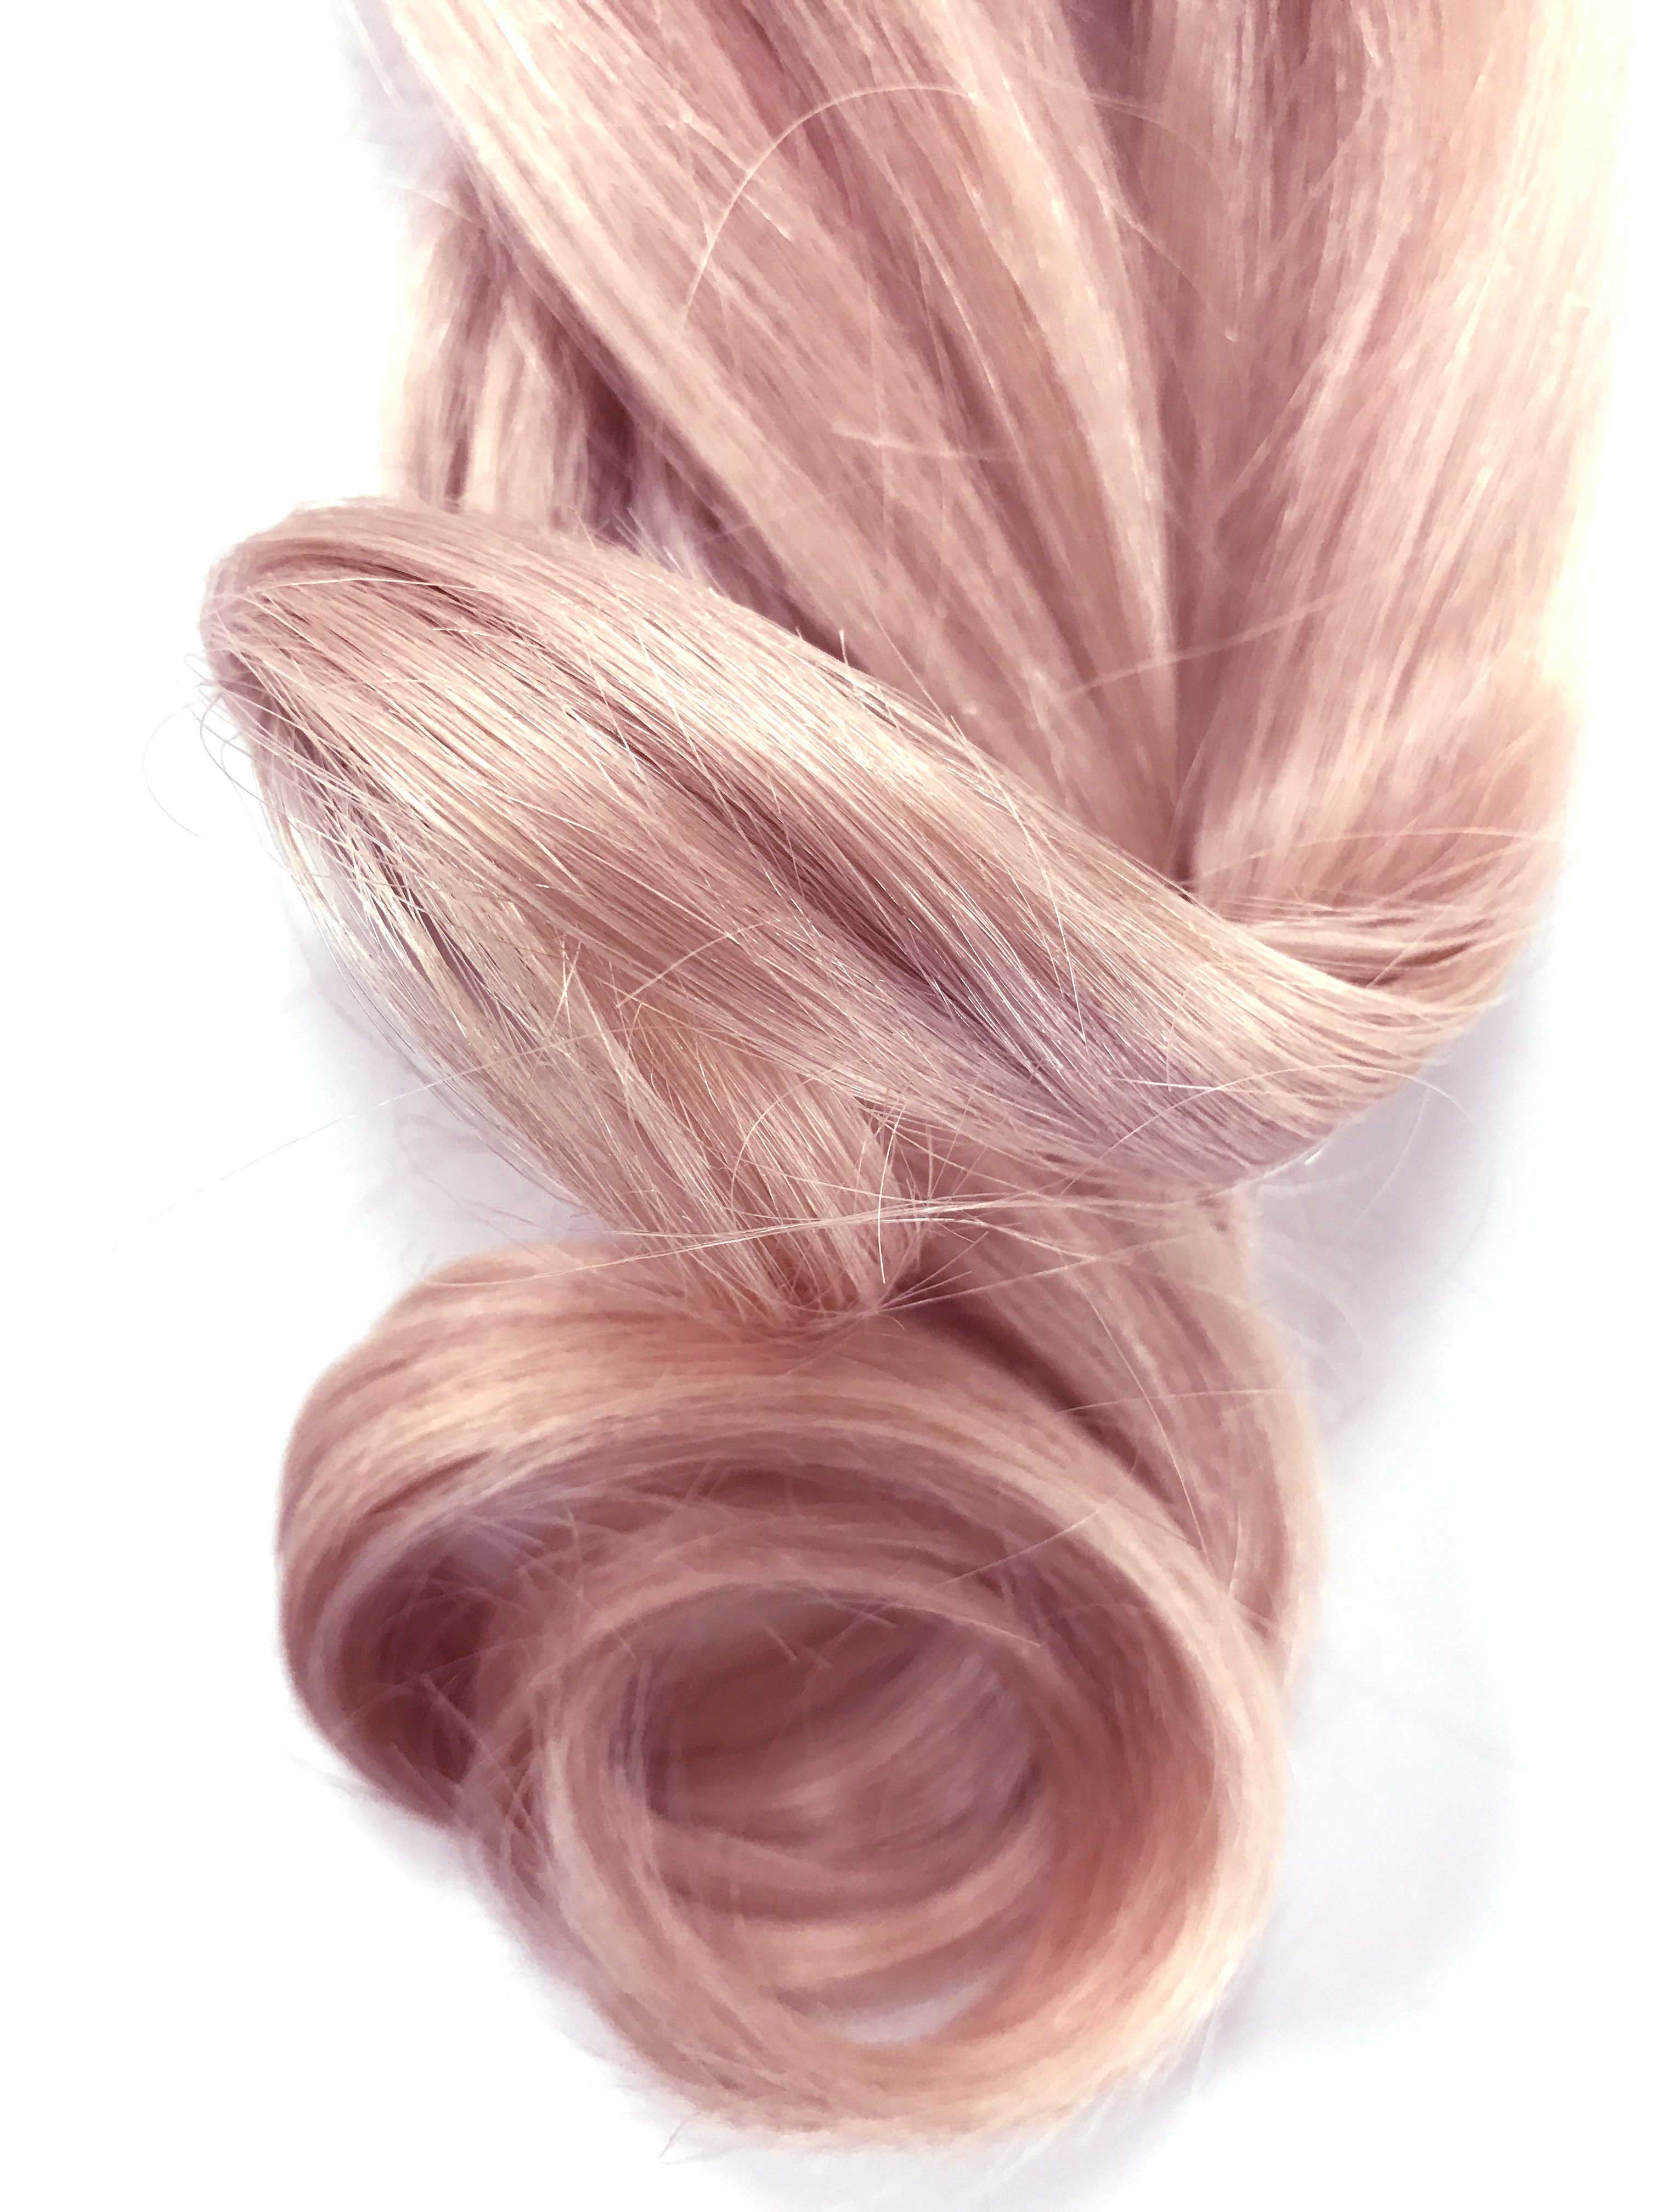 Rose gold hair colour hair extensions brazilian european hair bala rose gold hair colour extensions light rose pmusecretfo Choice Image